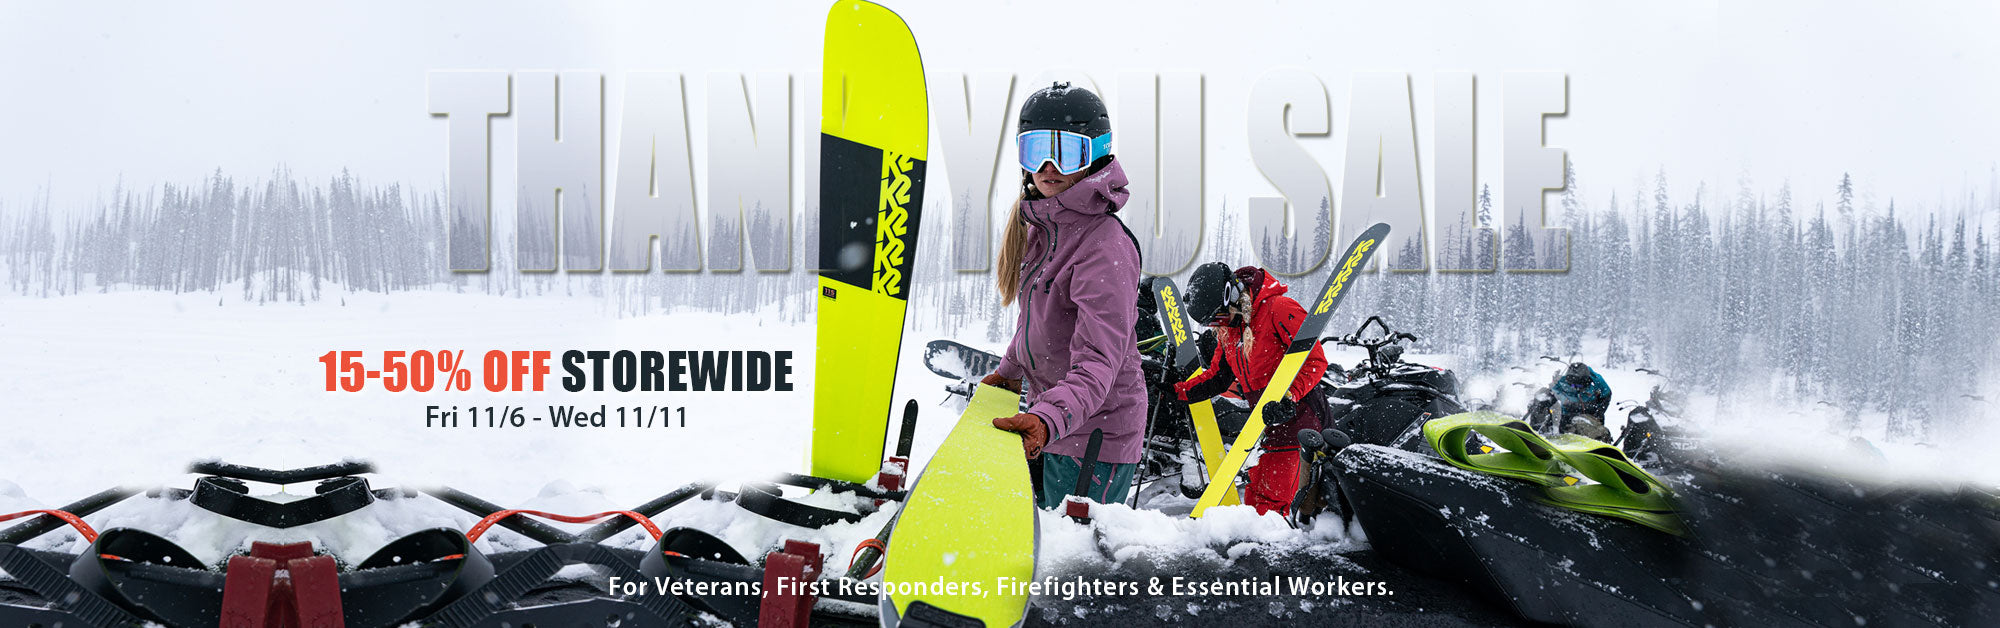 Sale up to 50% off at Proctor Ski in Nashua NH